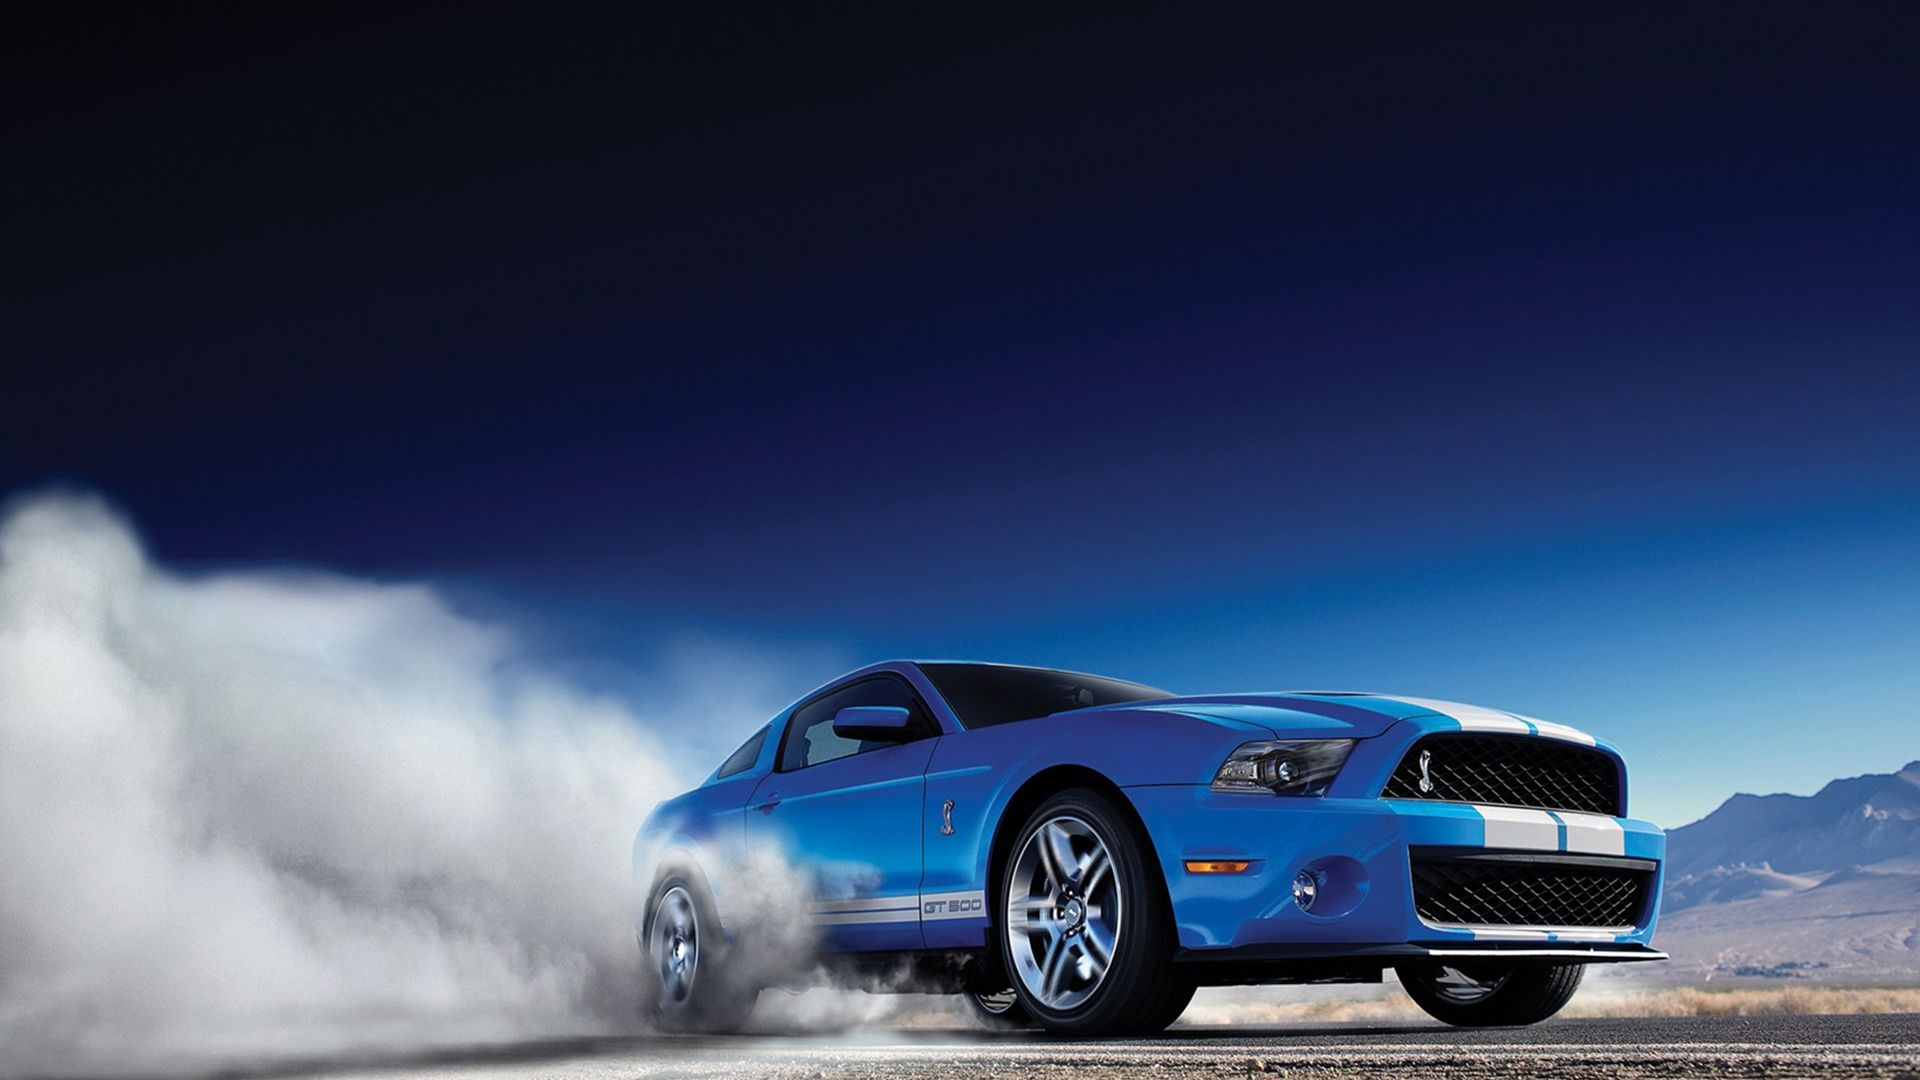 Shelby Gt 500 Wallpapers